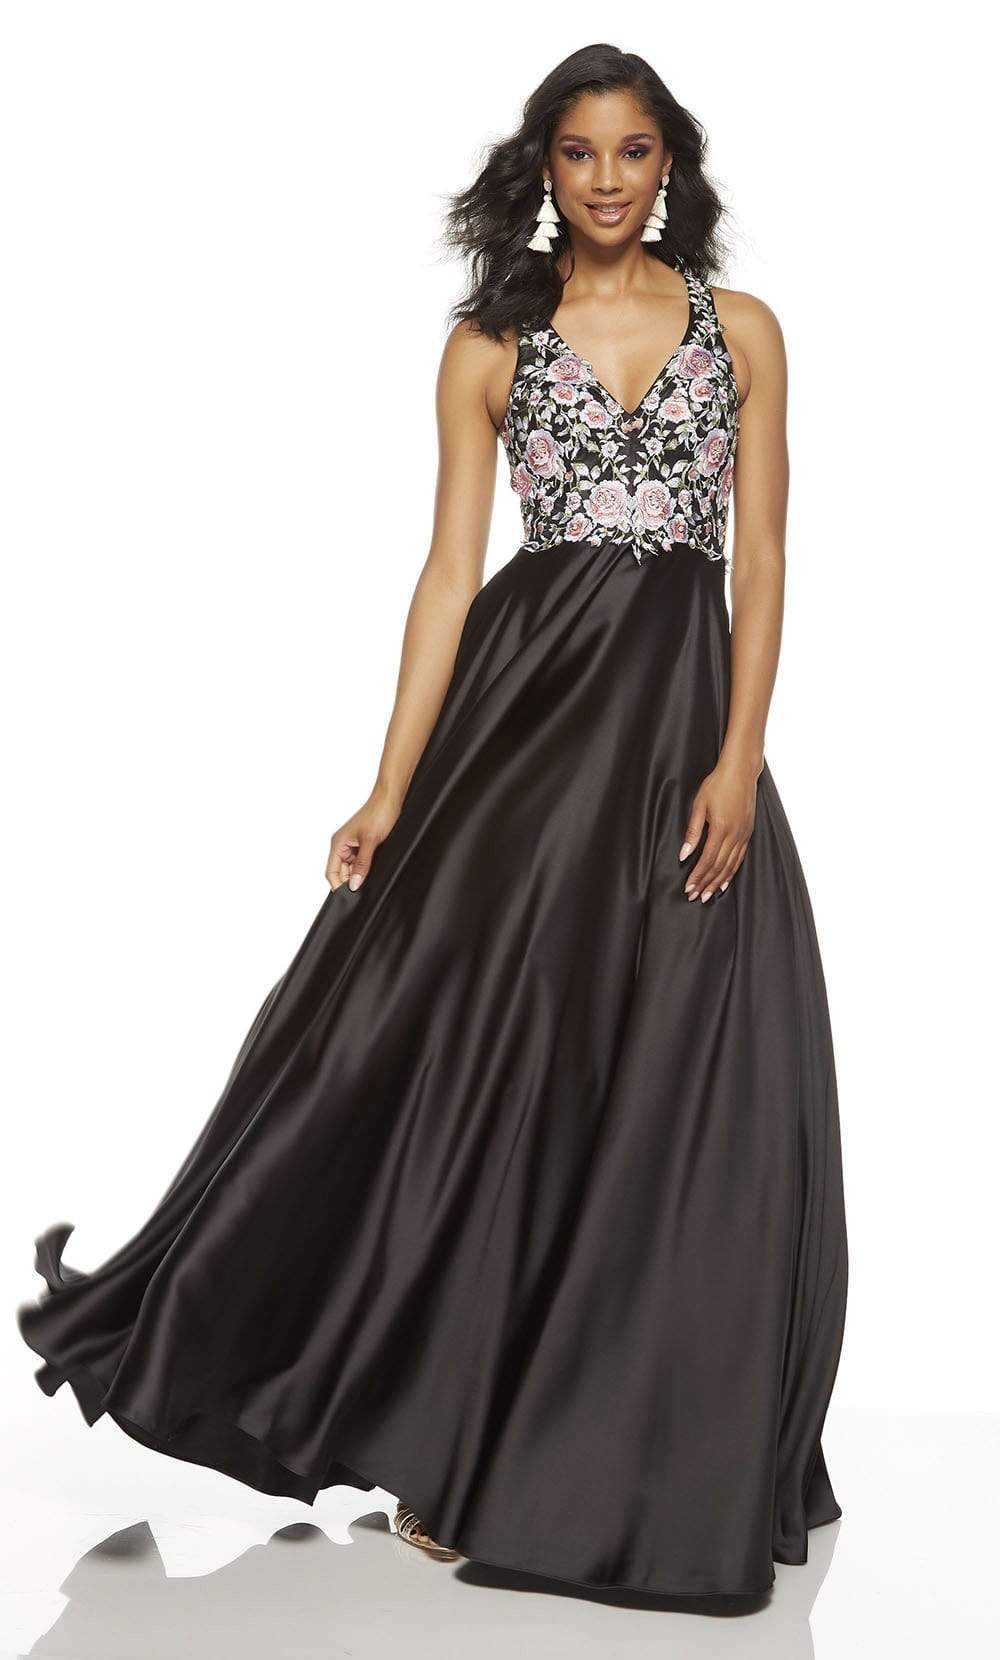 Alyce Paris - 60645 Floral Embroidered A-line Dress from Alyce Paris